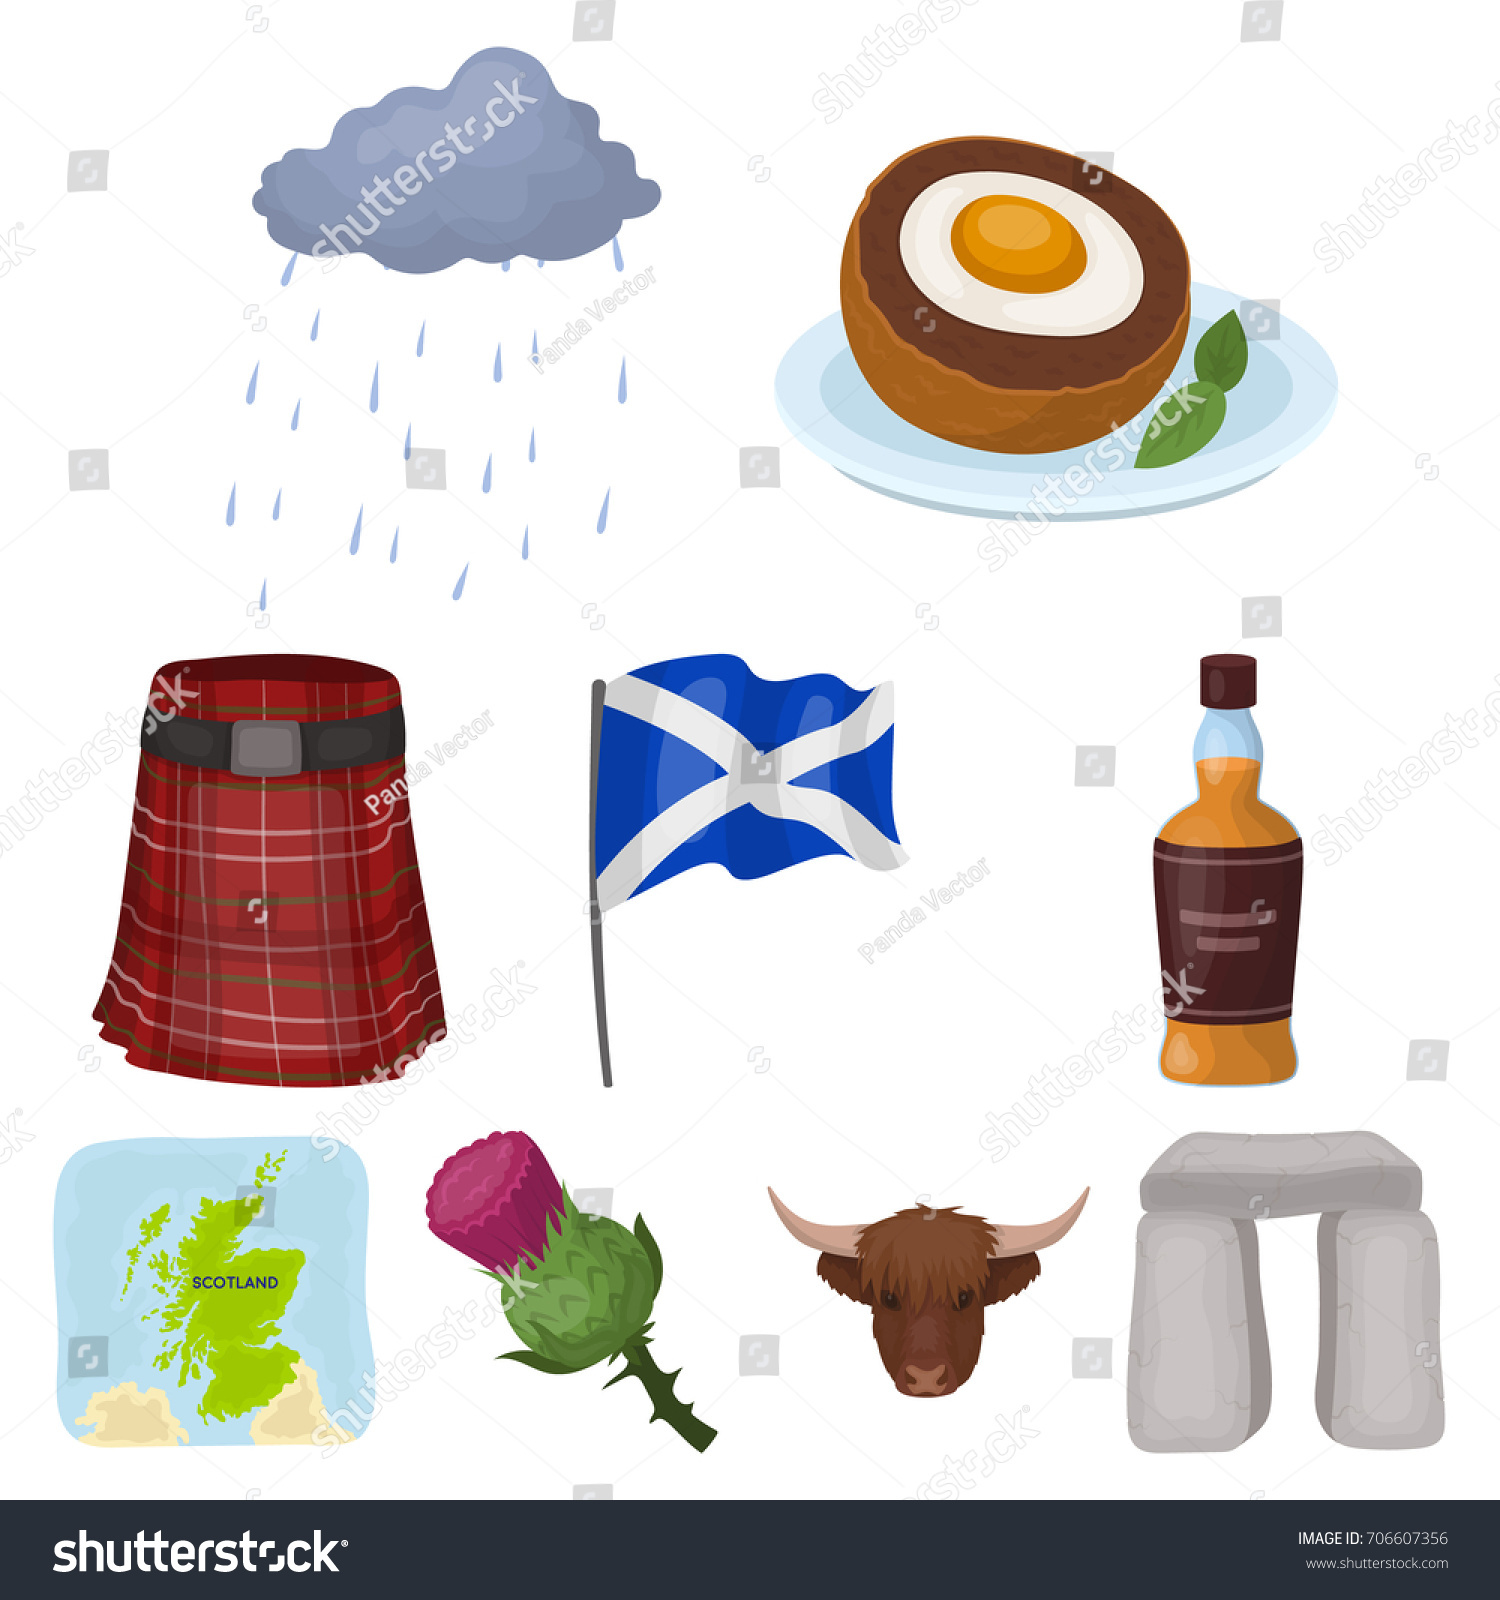 National symbols scotland scottish attractions scotland stock vector national symbols of scotland scottish attractions scotland country icon in set collection on cartoon buycottarizona Image collections